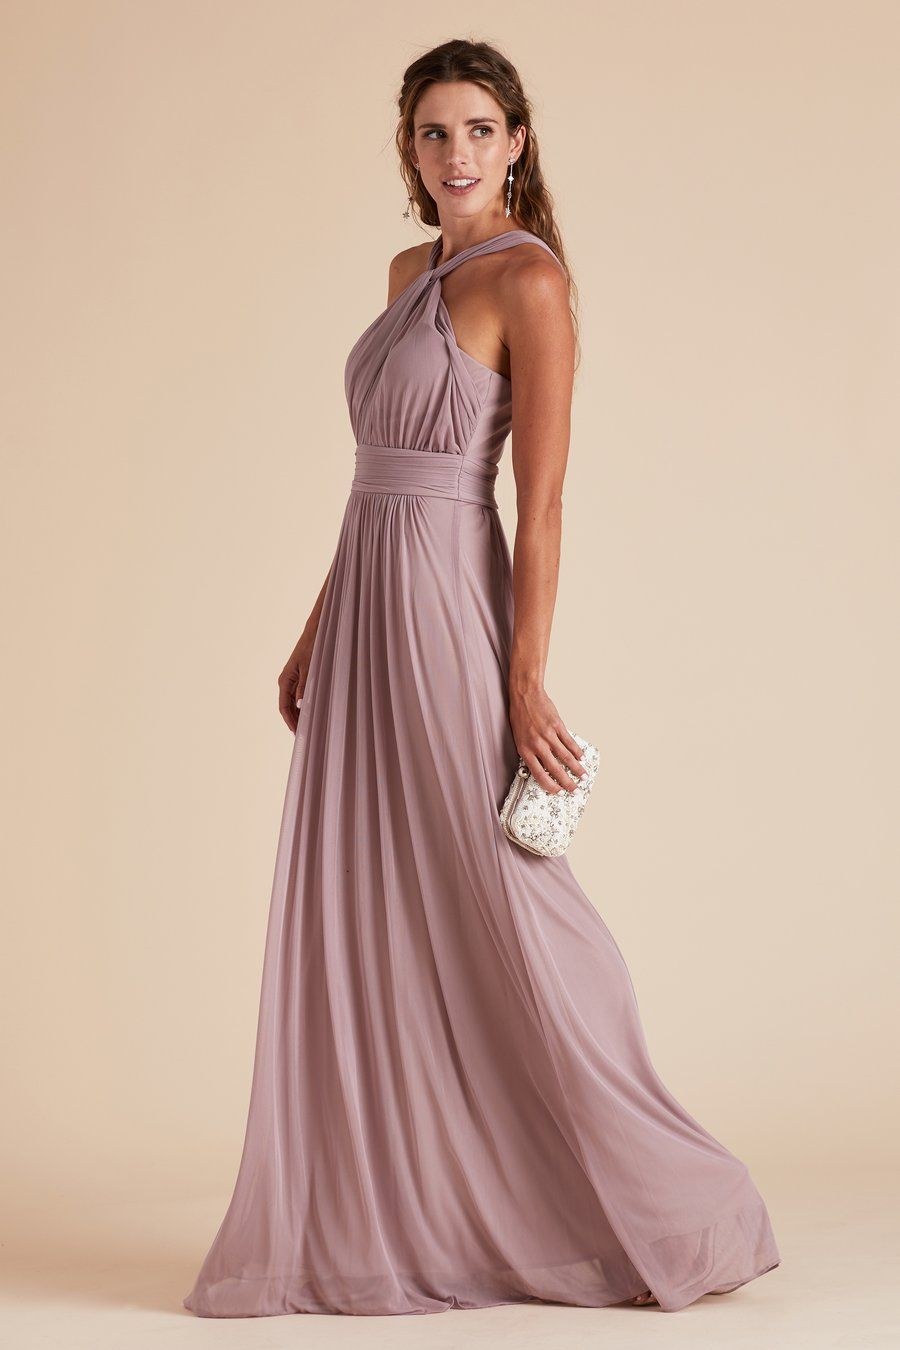 a662cd54ebb Kiko bridesmaid dress by Birdy Grey in Mauve. Grecian halter neckline.  Under  100.